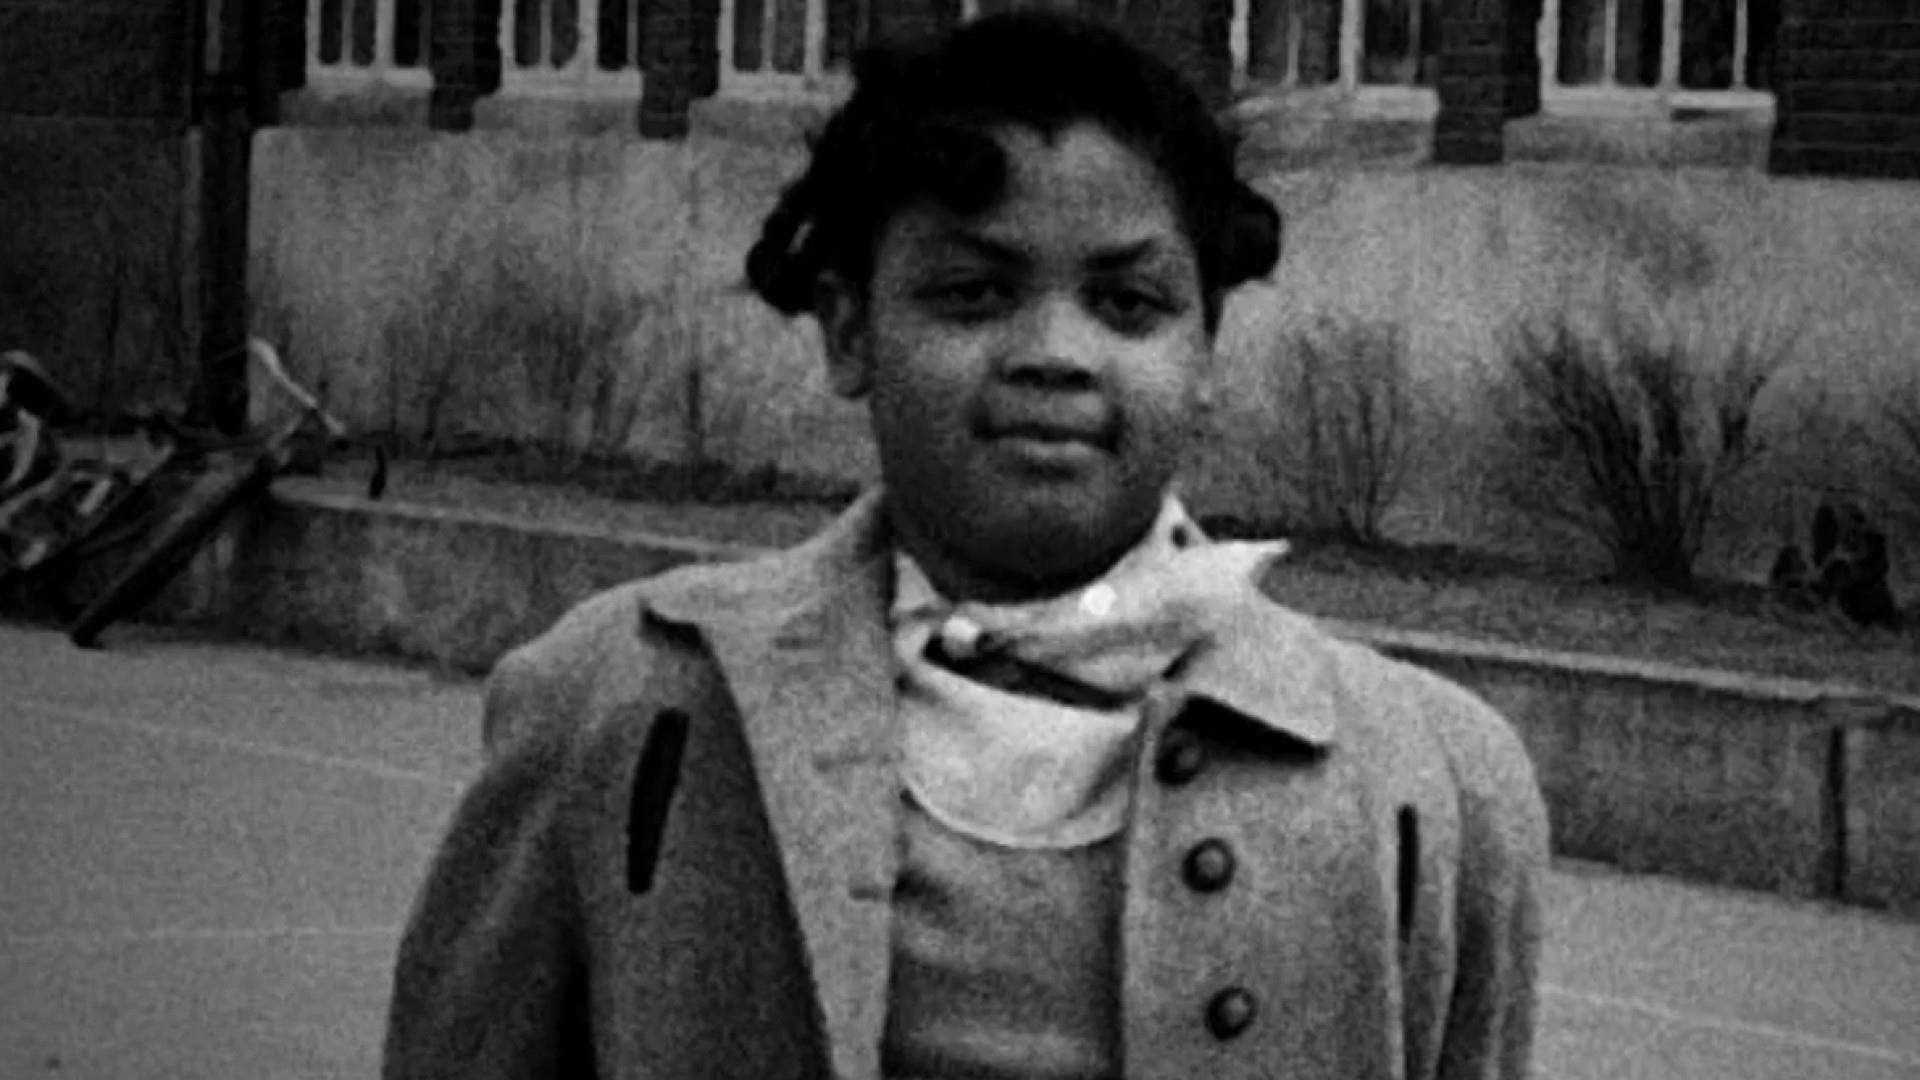 #OneGreatWoman: Linda Brown